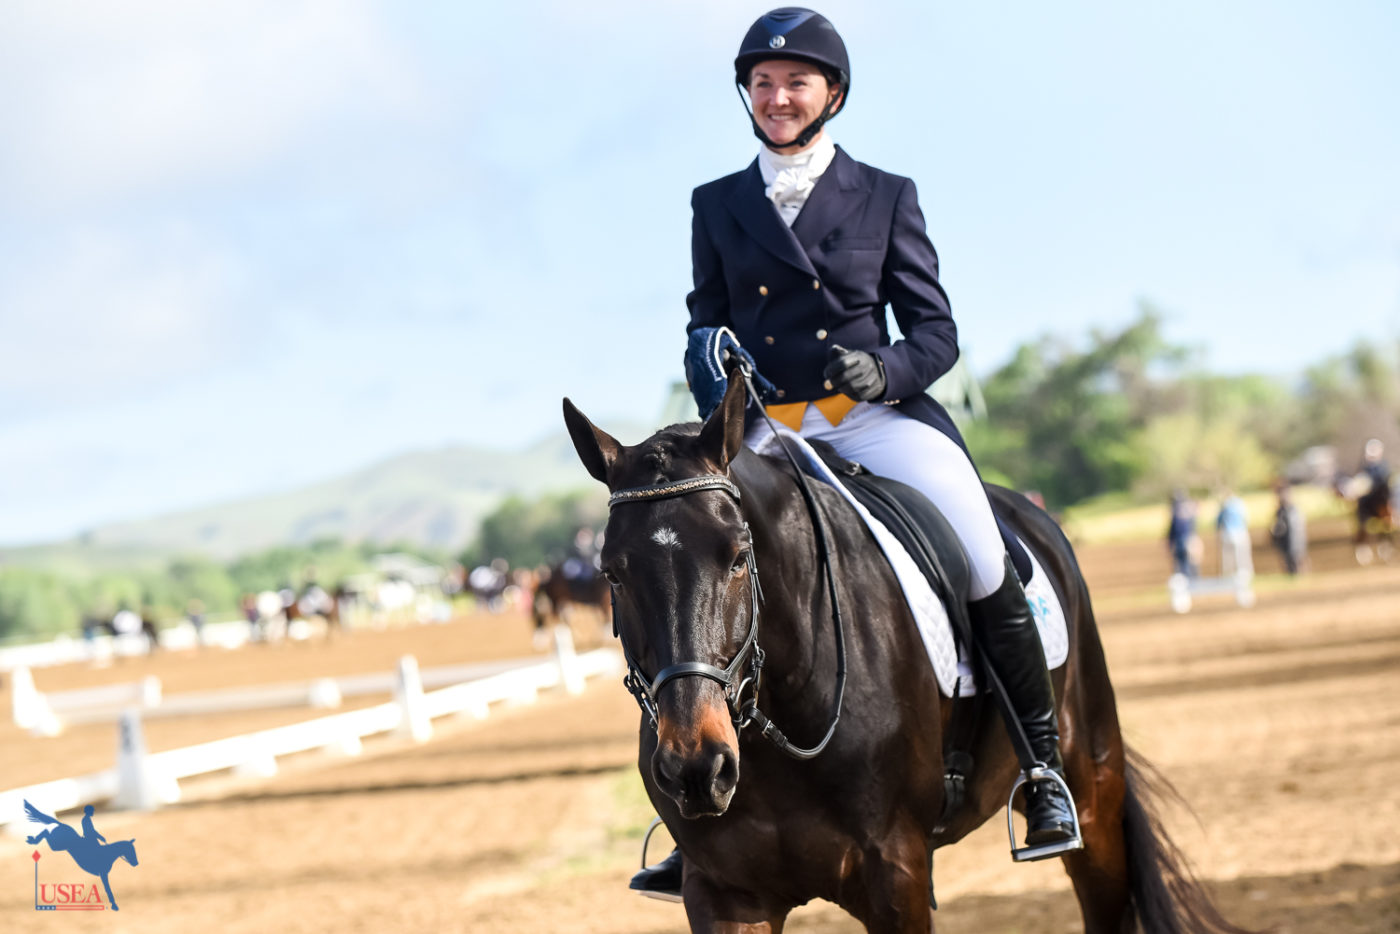 Amber Levine looking very pleased after her test with Cinzano. USEA/Jessica Duffy Photo.